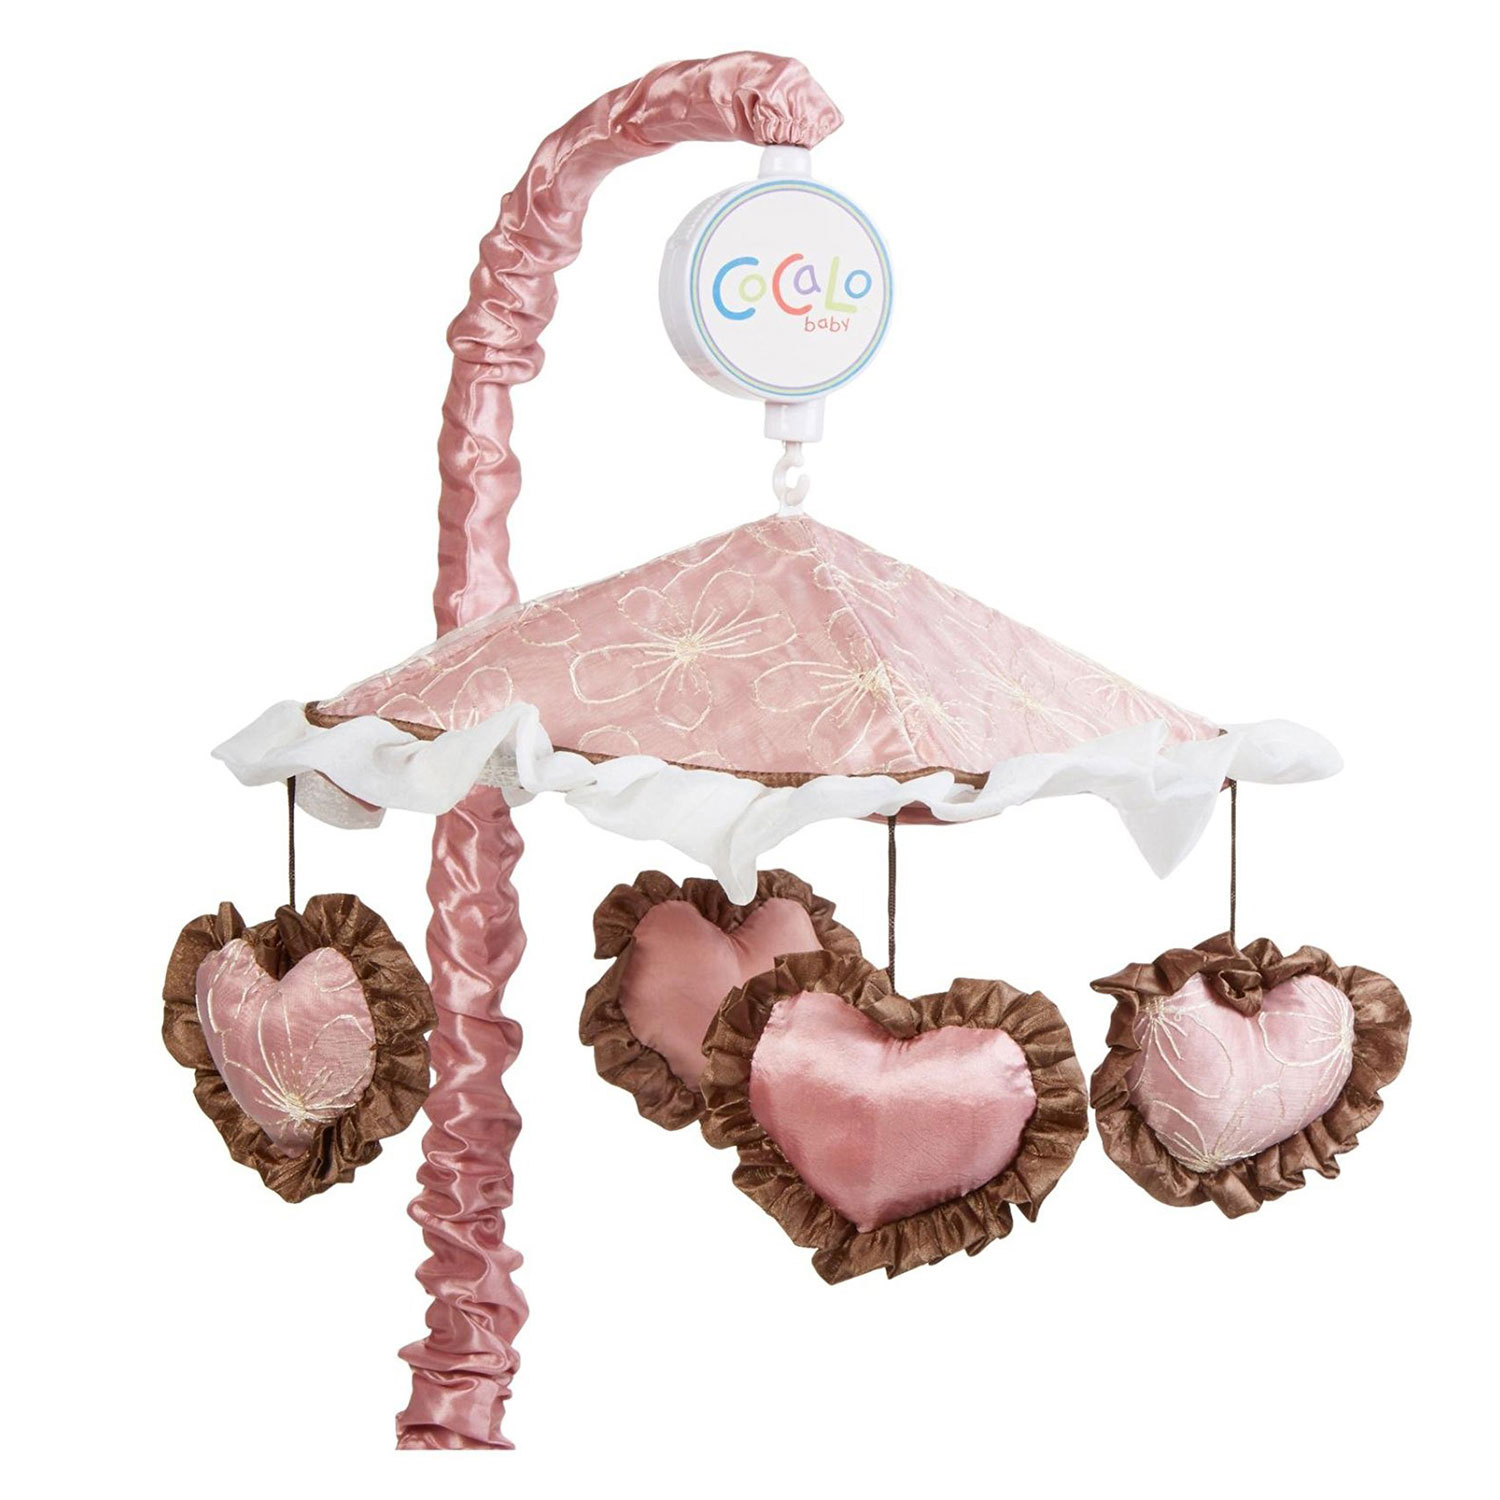 Cocalo Baby Crib Musical Mobile - Pink and Cream - Daniel...